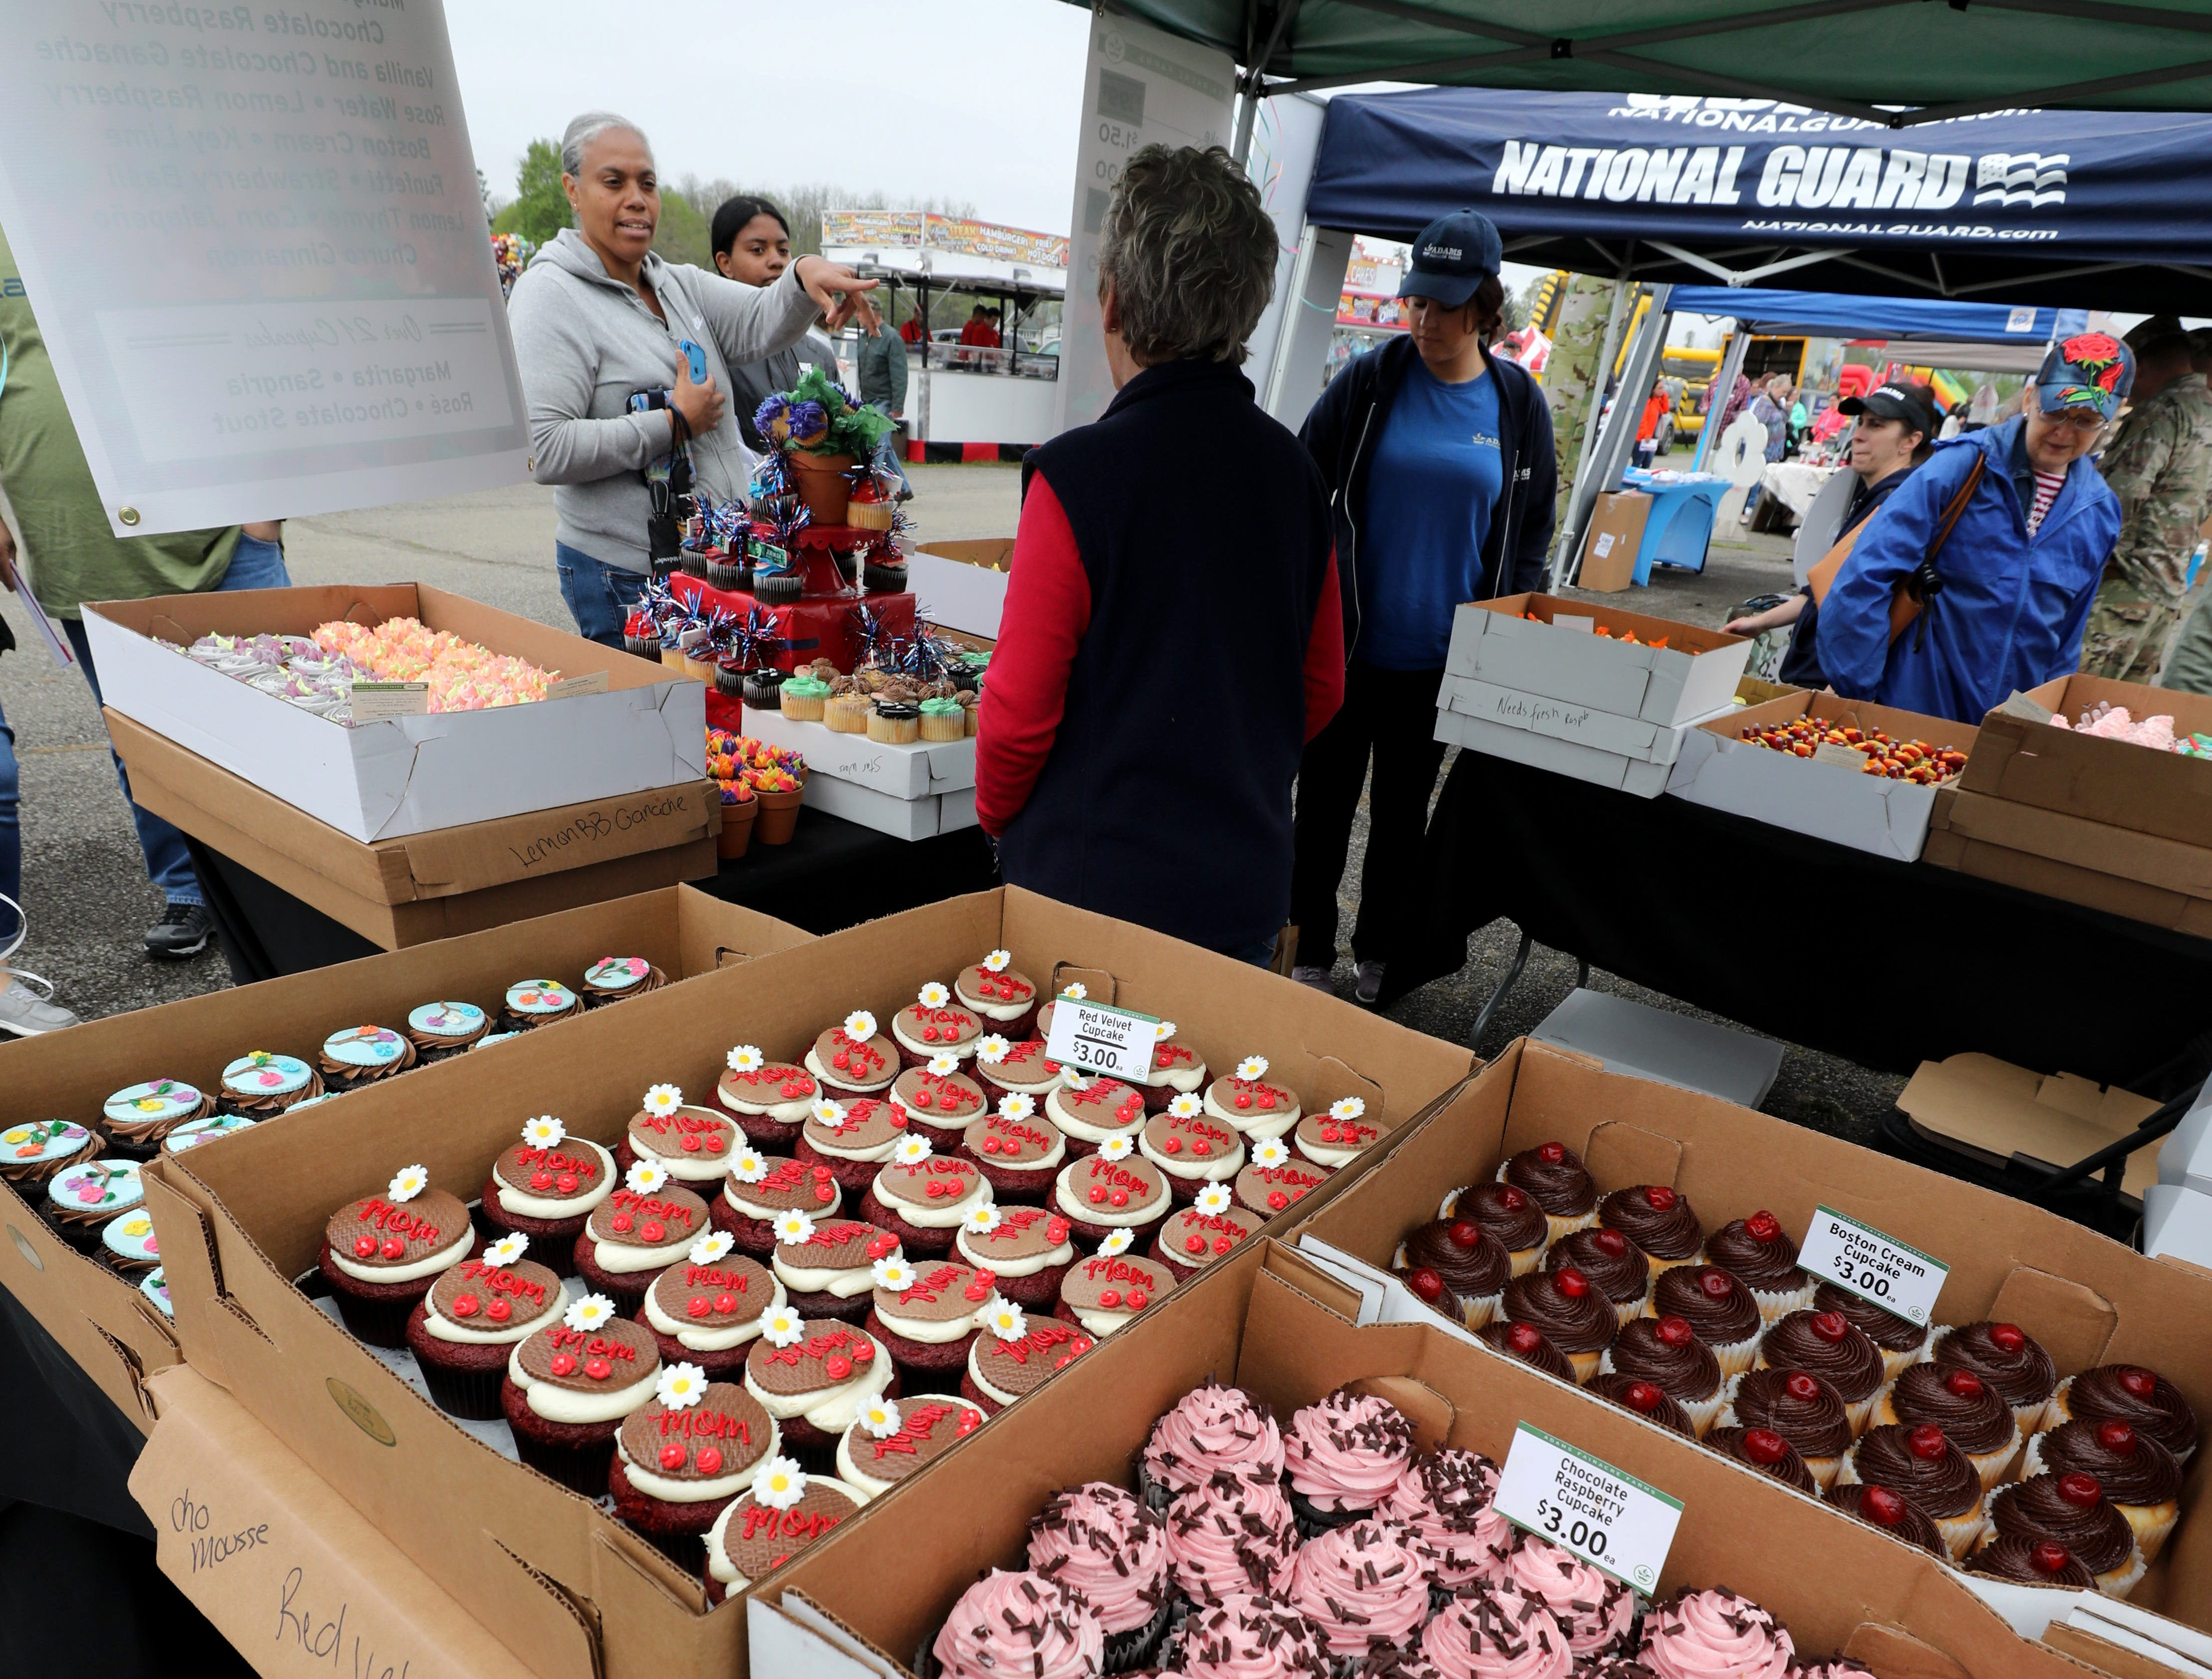 A variety of cupcakes at the Adam's Fairacre Farms booth are pictured at the K104.7 Cupcake Festival at the Stormville Airport, May 4, 2019.